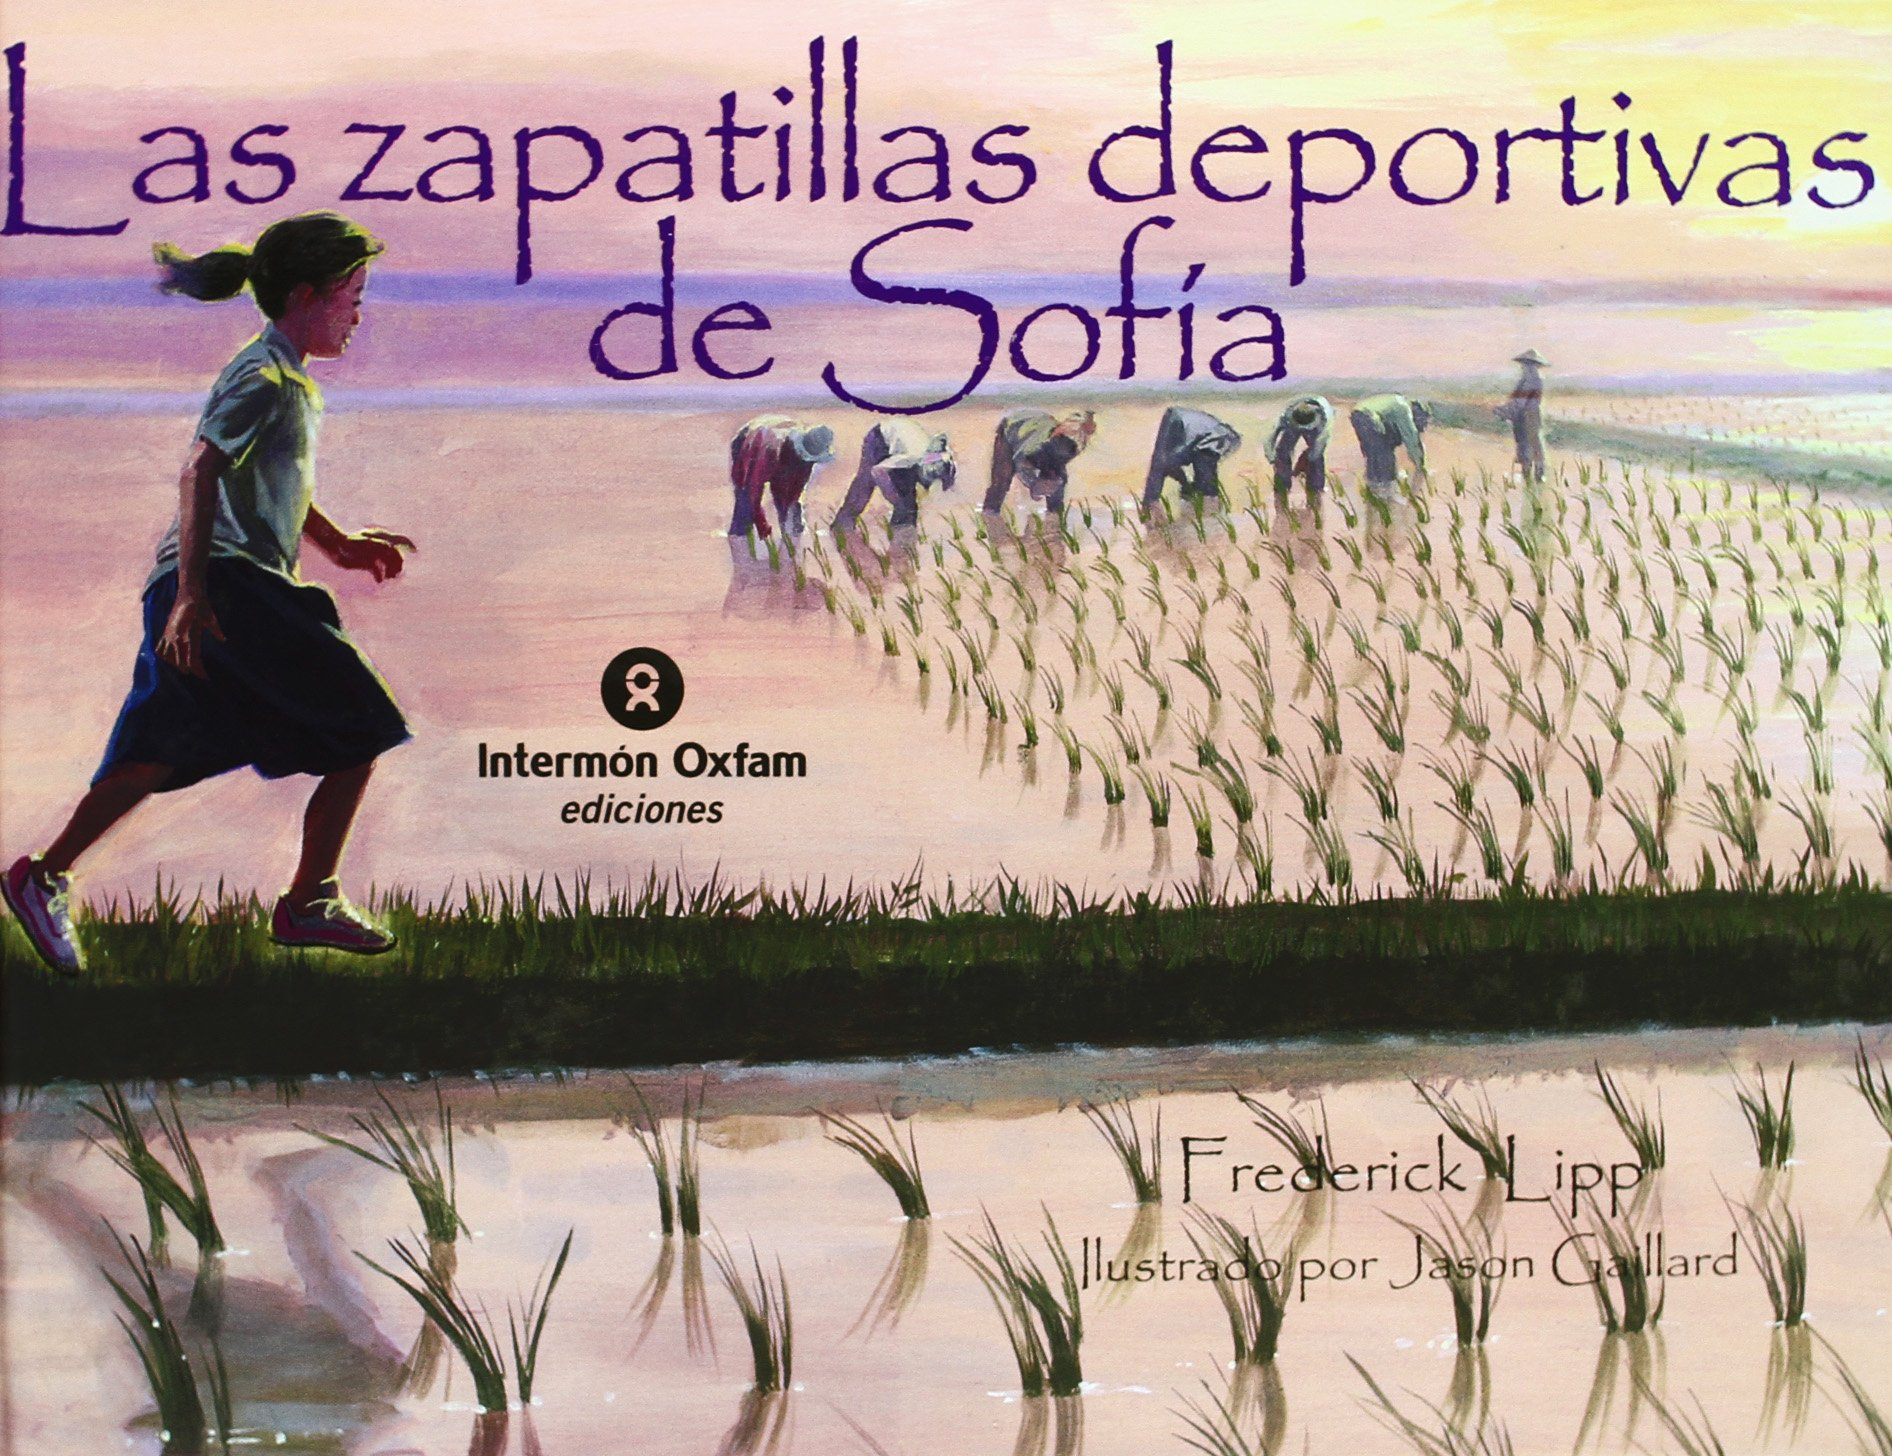 Las zapatillas deportivas de Sofia / Running Shoes (Spanish Edition) (Spanish) Hardcover – September 7, 2007